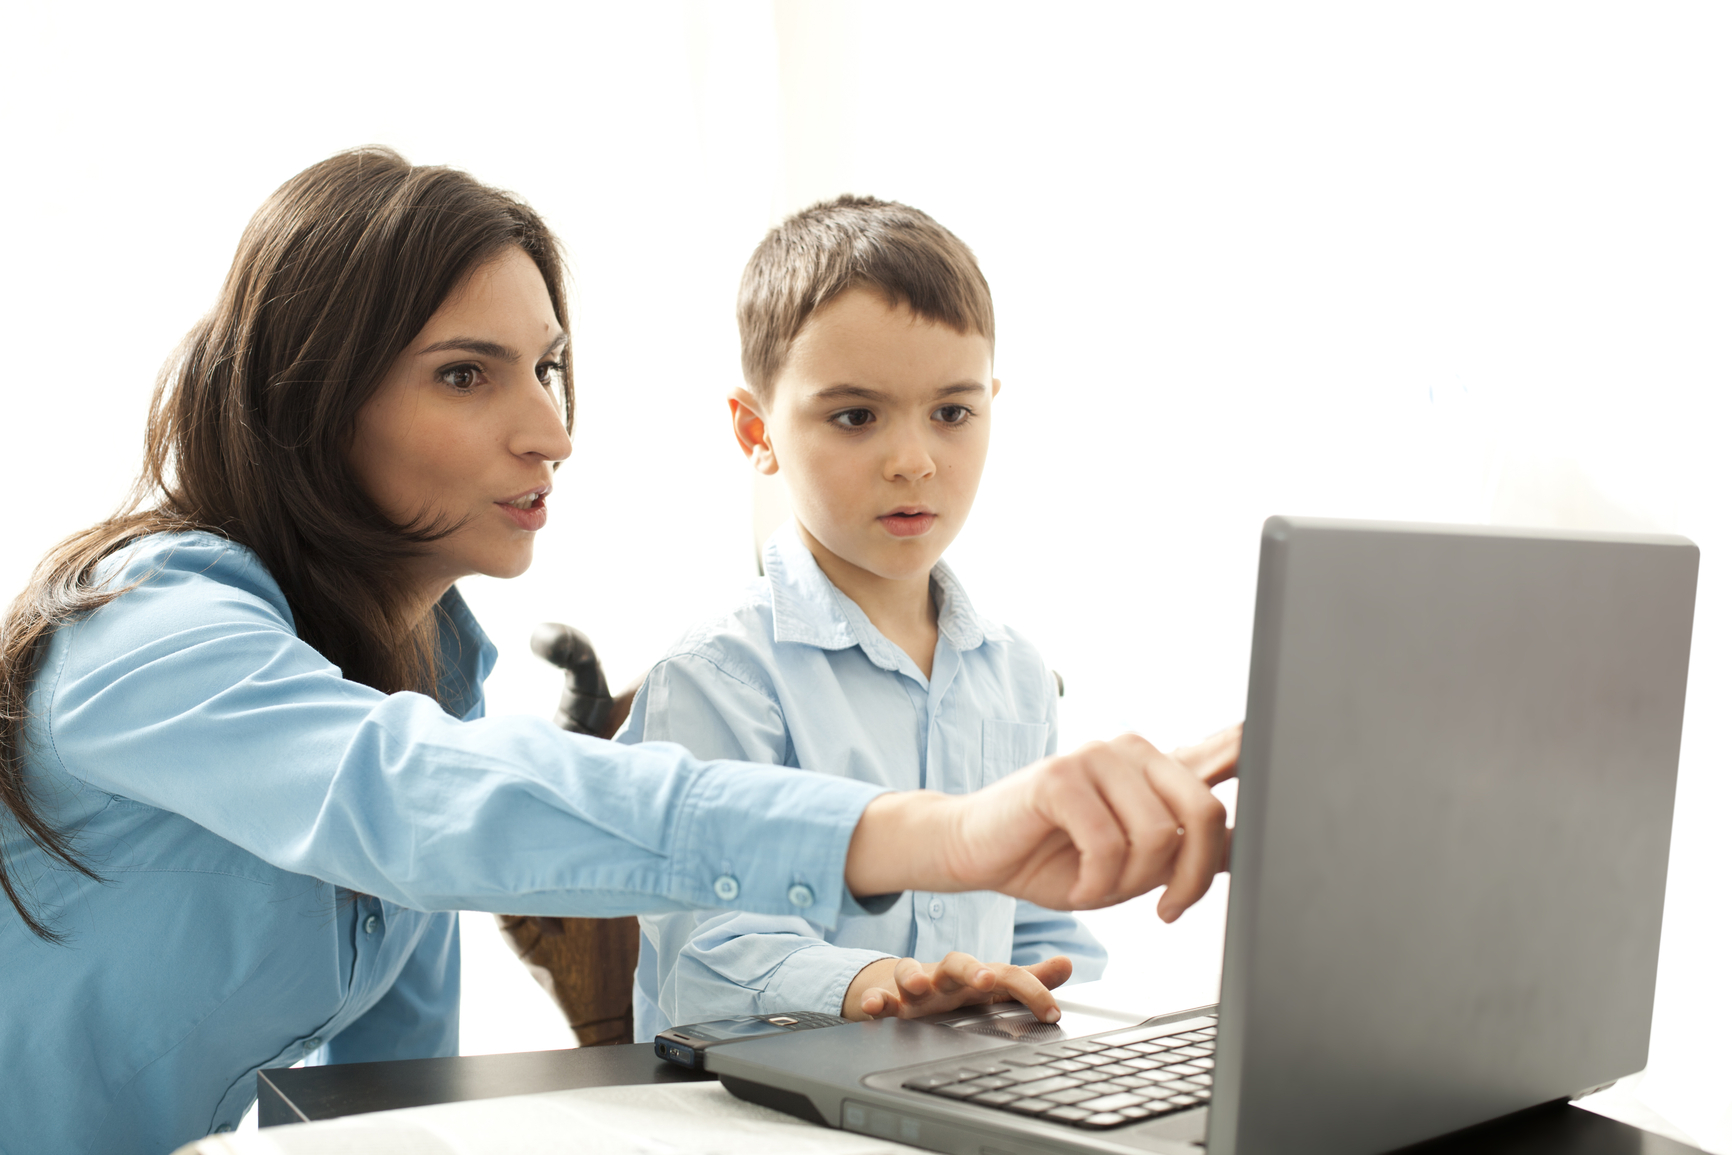 Top 6 Computer Safety Tips for Parents of young kids